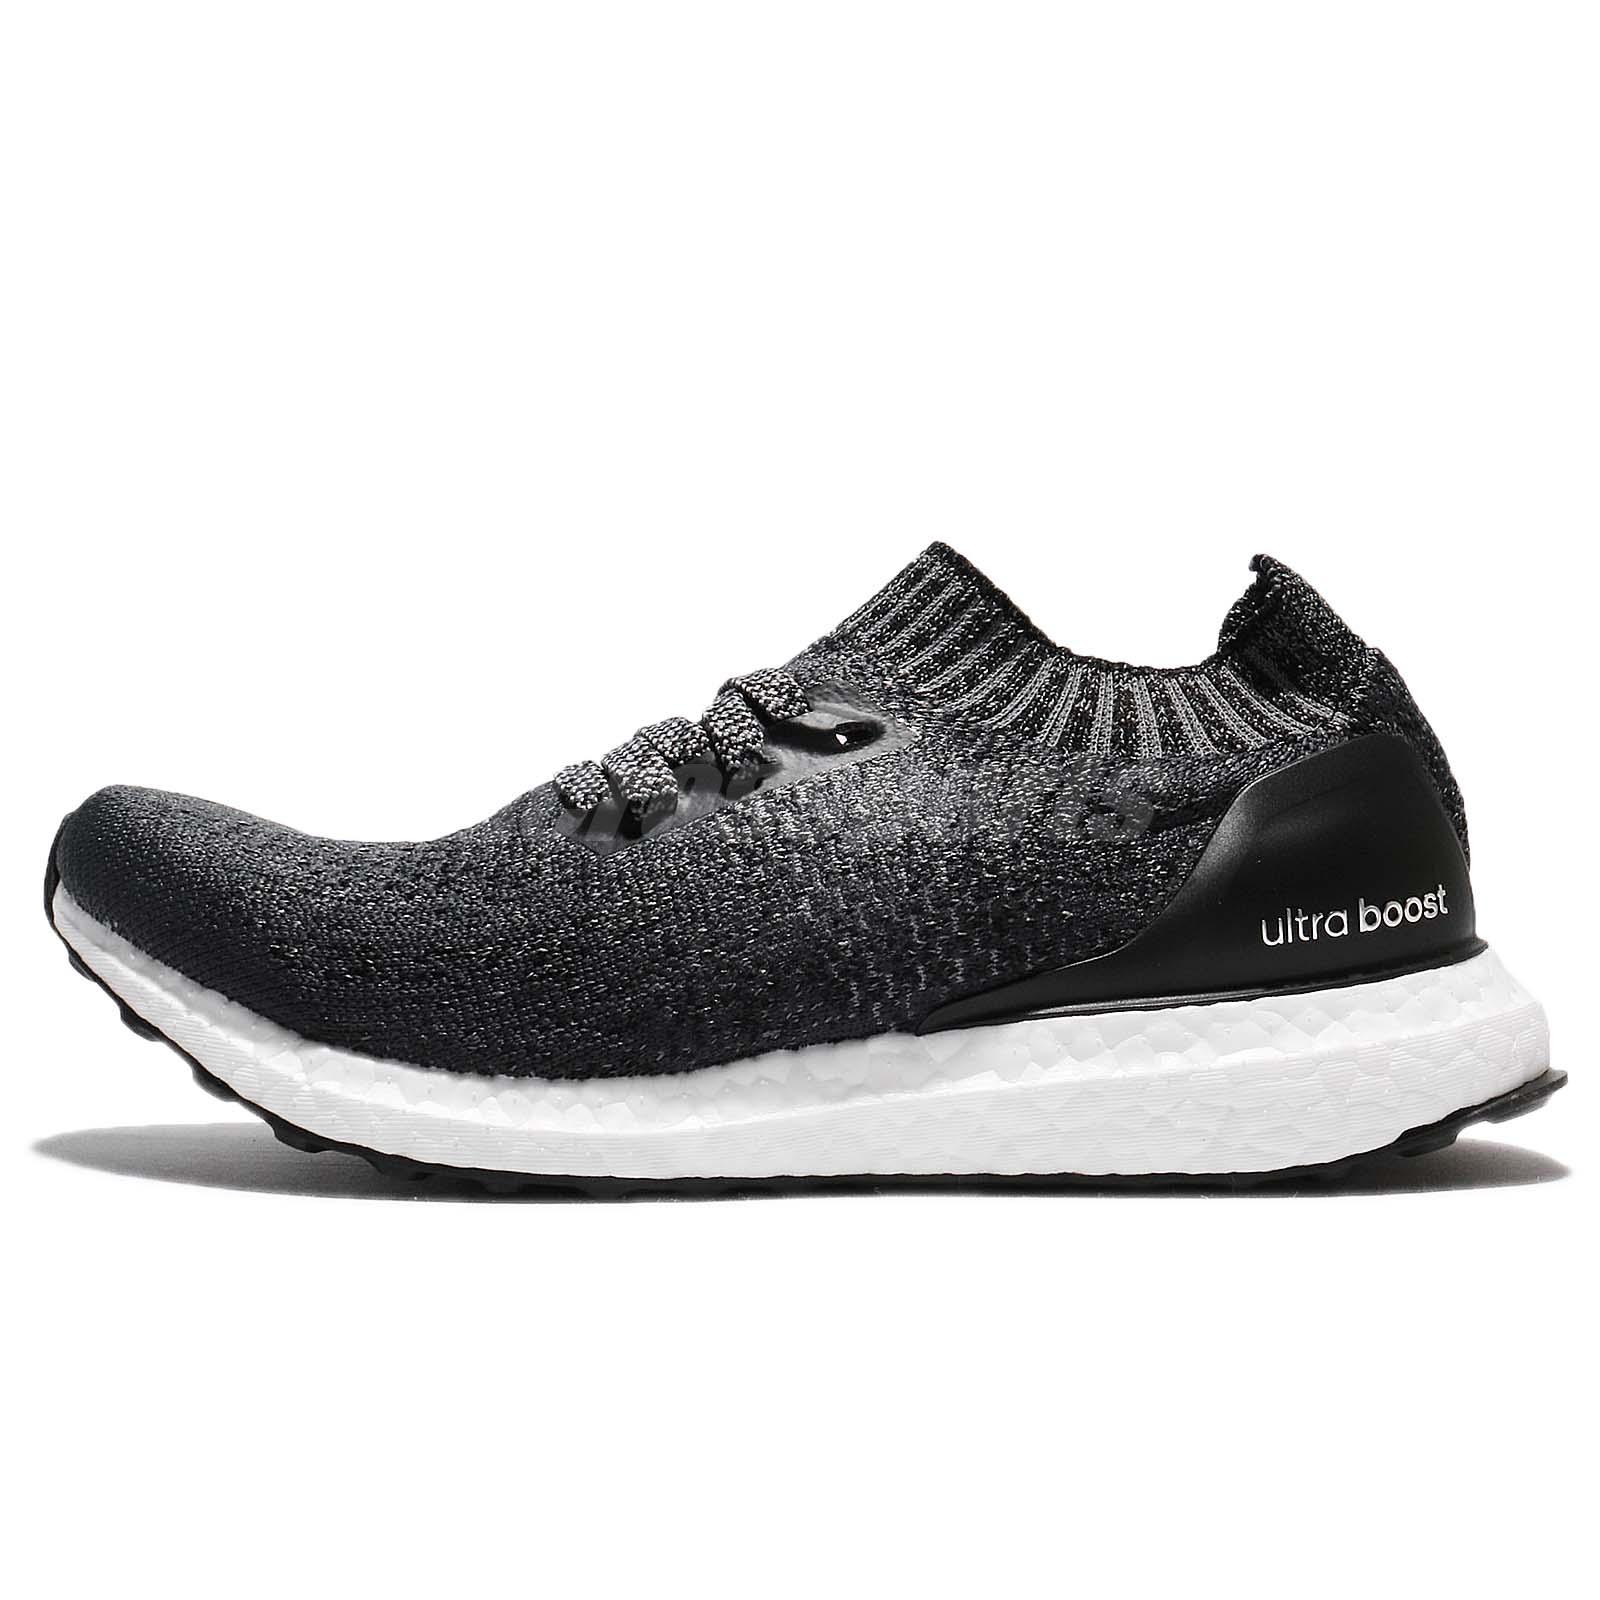 f33517be9 adidas UltraBOOST Uncaged W Carbon Black Grey Women Running Shoes Sneaker  DB1133